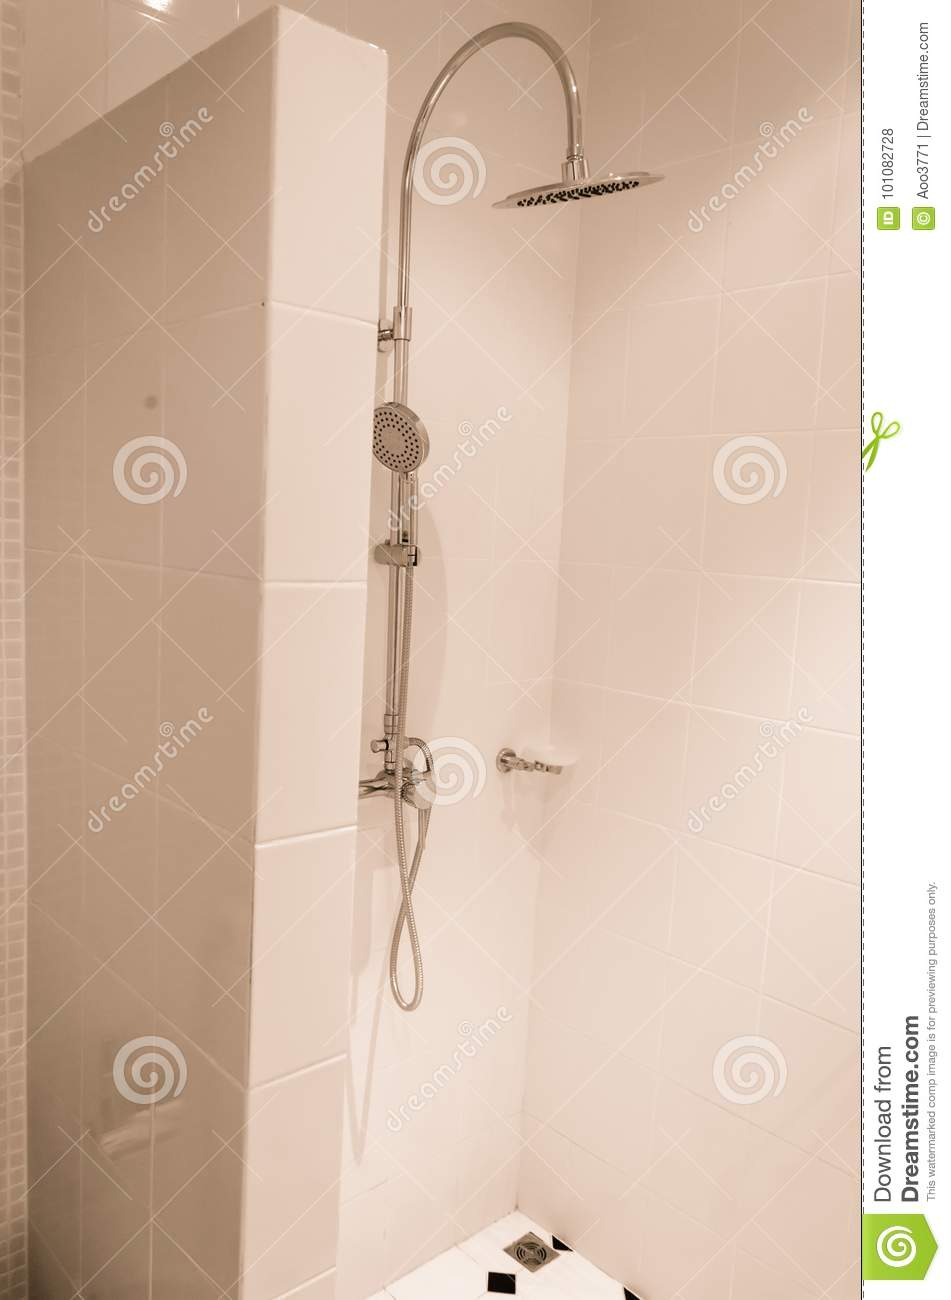 Vintage shower head stock photo. Image of house, decorative - 101082728